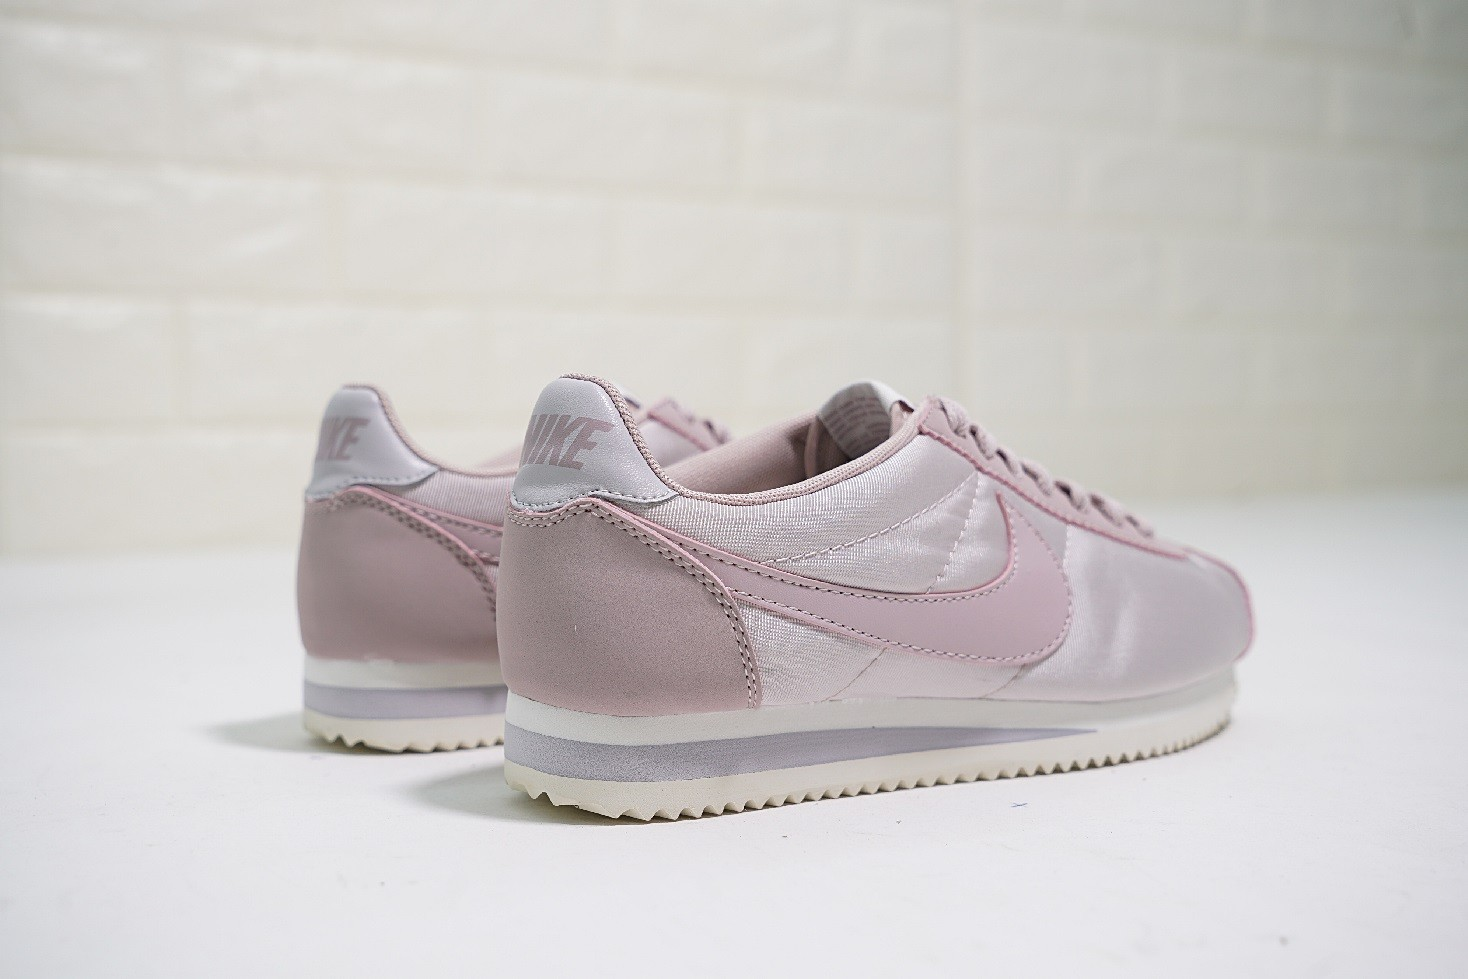 051deb7bca50 Nike Classic Cortez Nylon Trainers Particle Rose 749864-605 - Febbuy